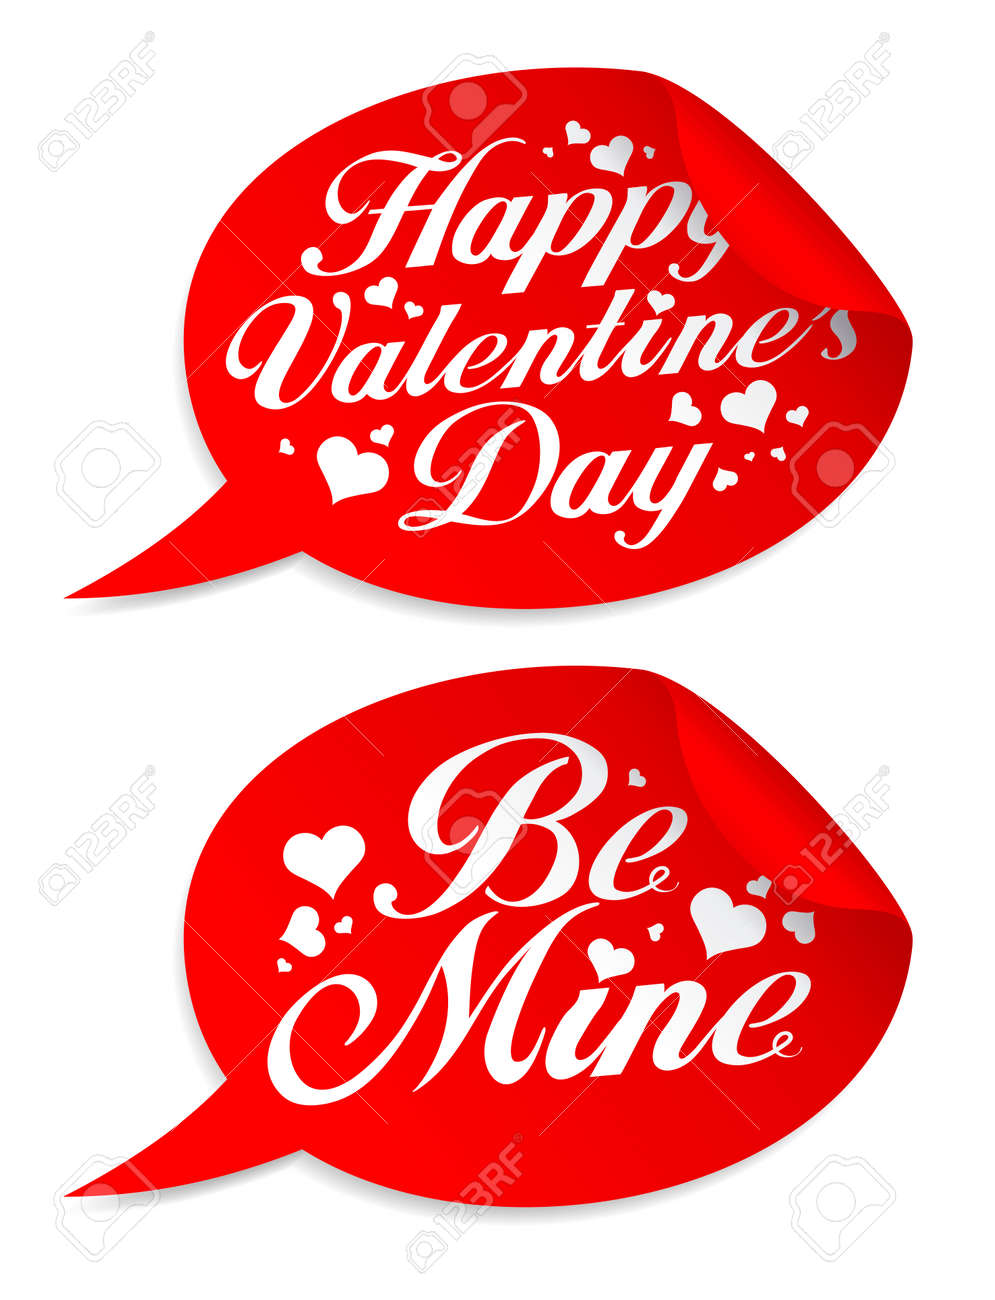 Happy Valentine`s day stickers in form of speech bubbles. Stock Vector - 8618997